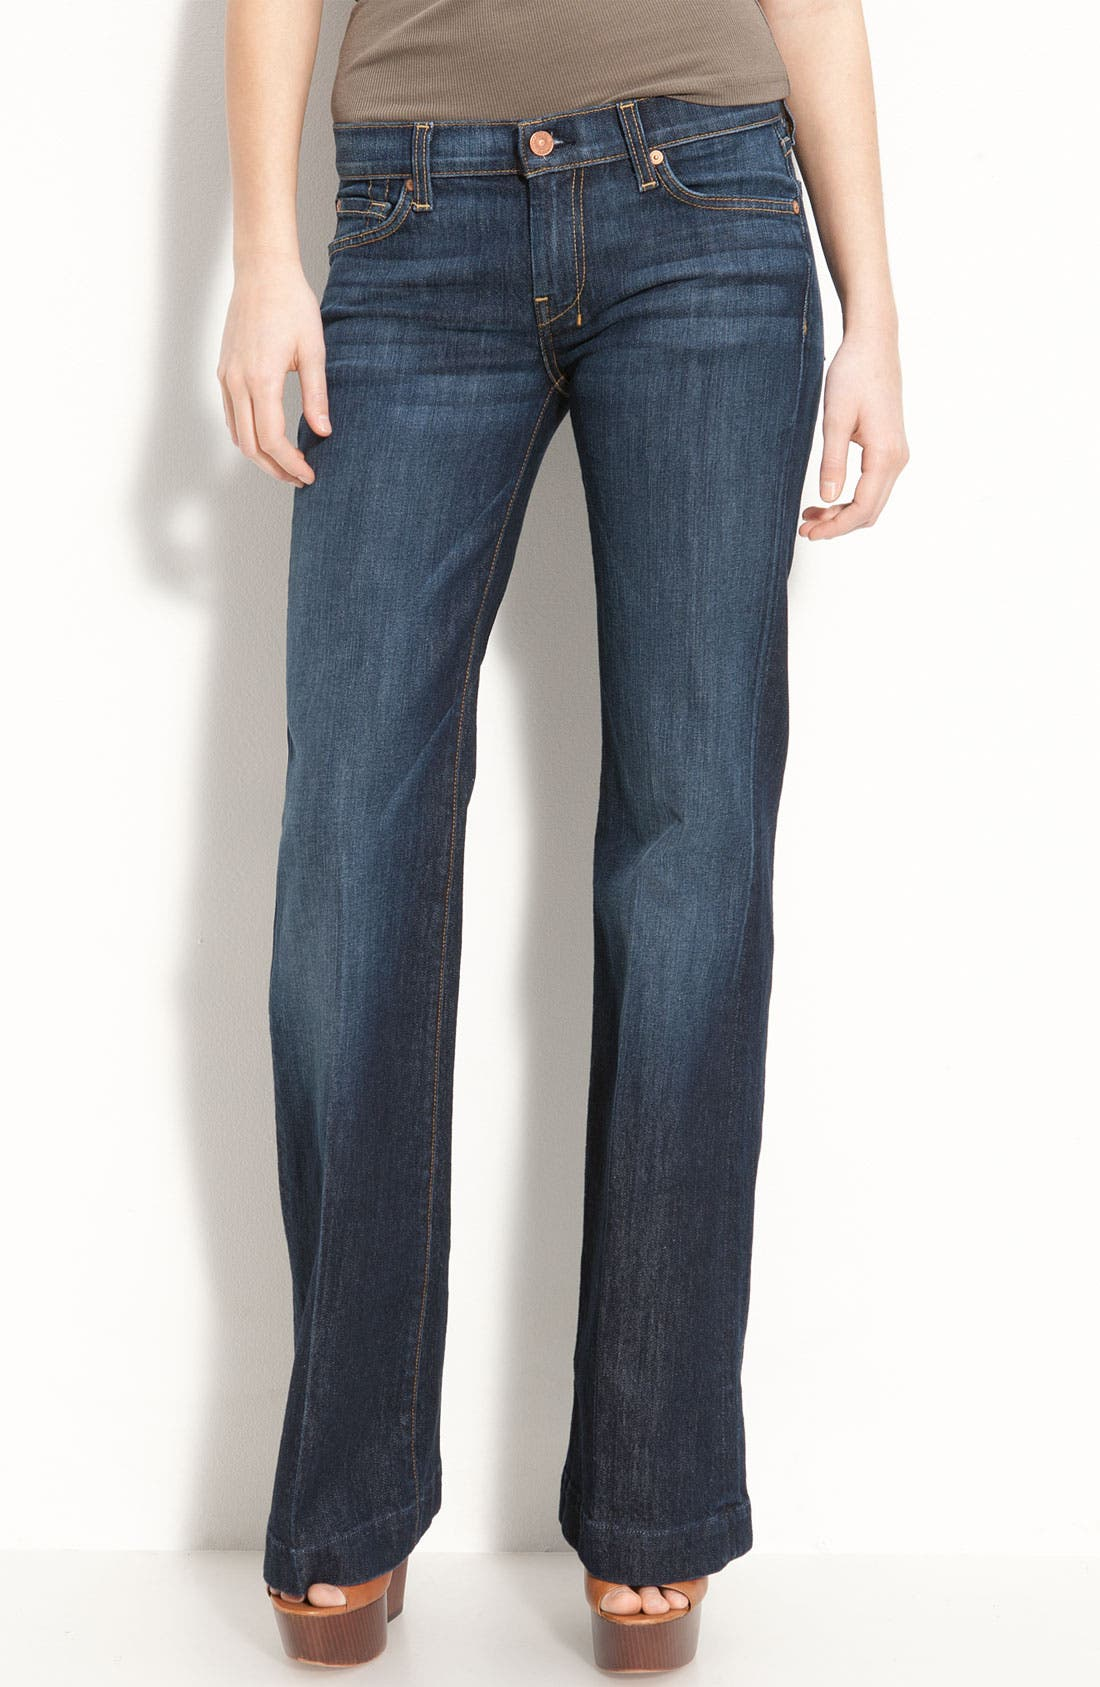 Main Image - 7 For All Mankind® 'Dojo' Stretch Trouser Jeans (Short) (Midnight New York)